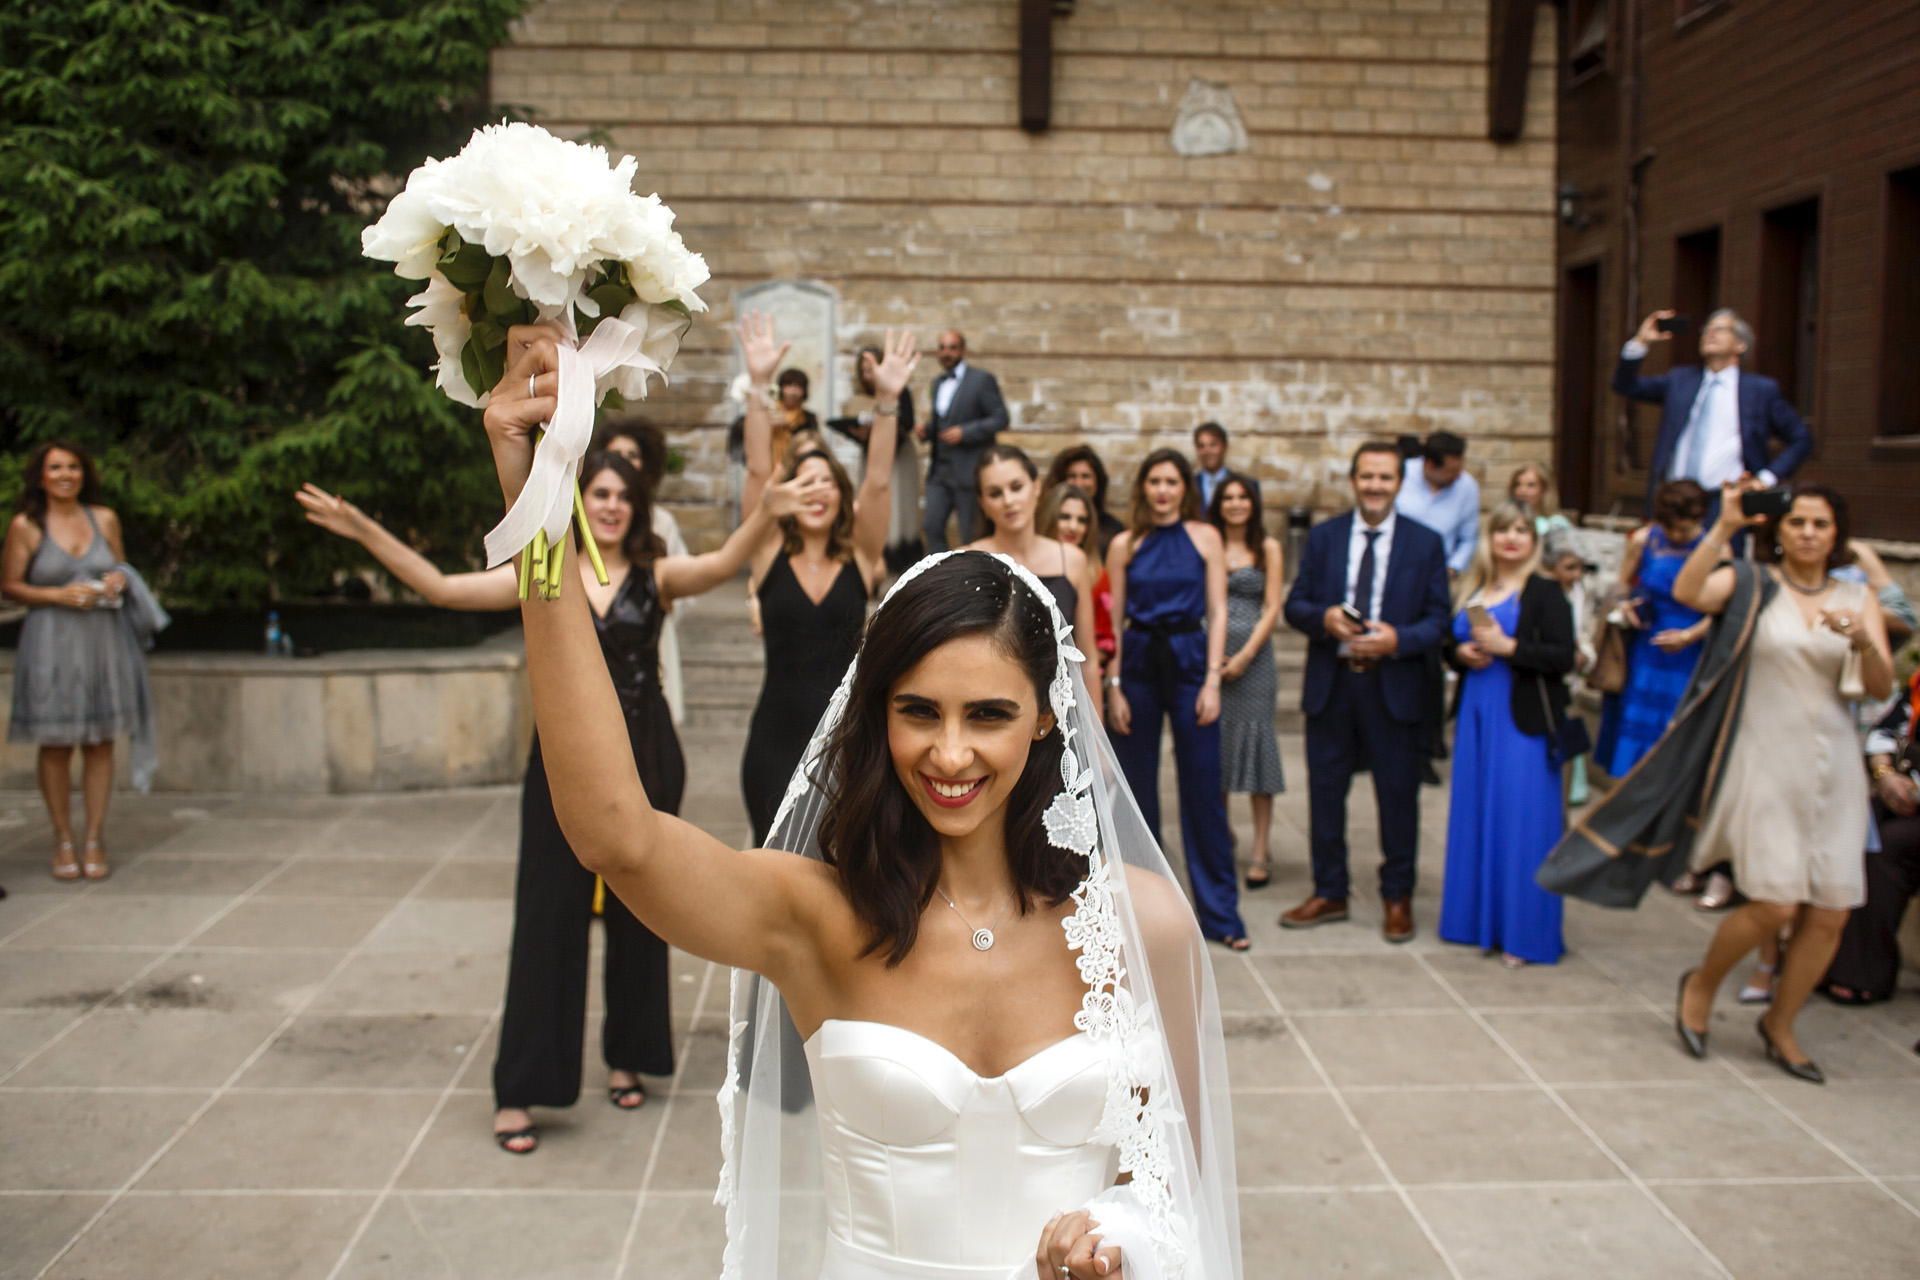 Balat, Istanbul, Turkey Wedding Photography | The bride is throwing the bouquet